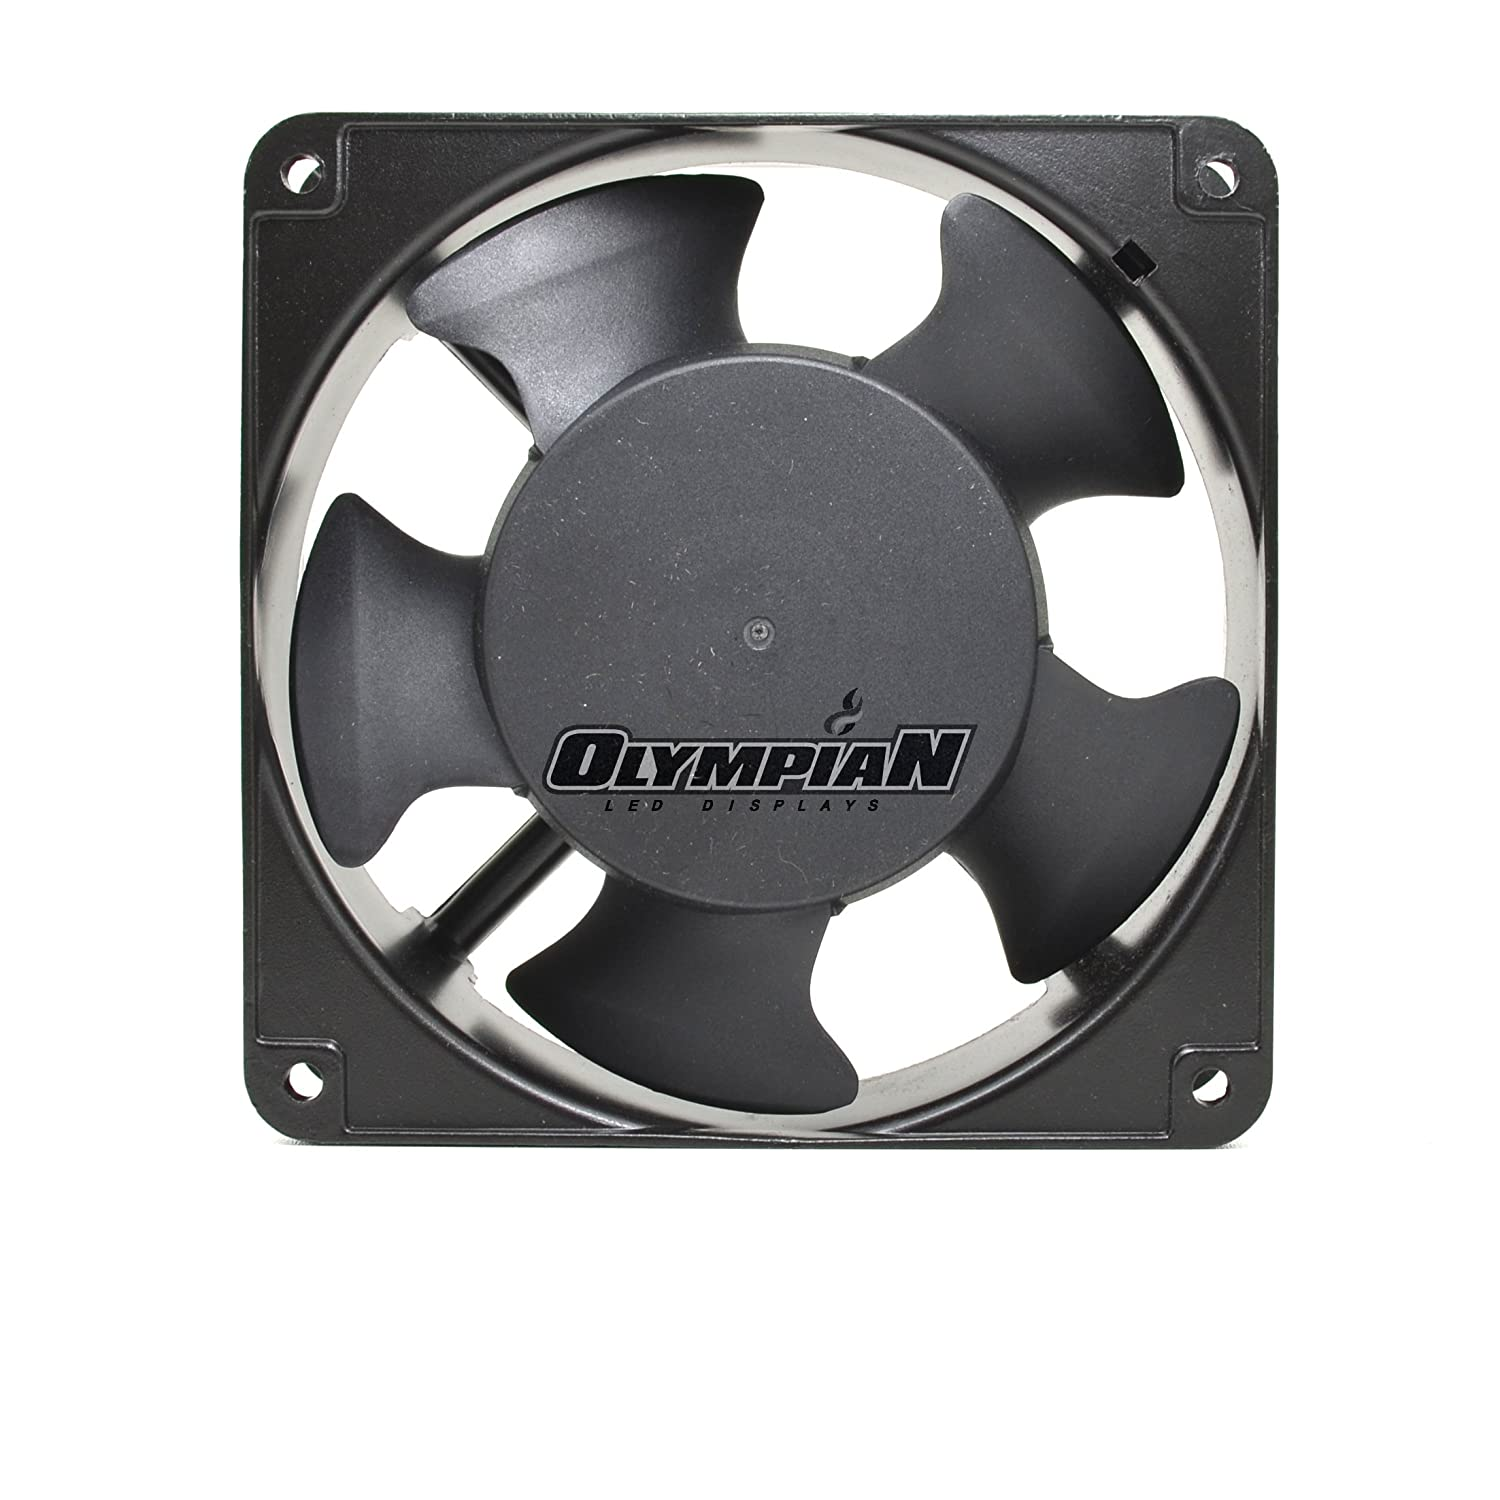 80mm 8cm Computer Case Fan Guard Grill Metal Cooling Safety